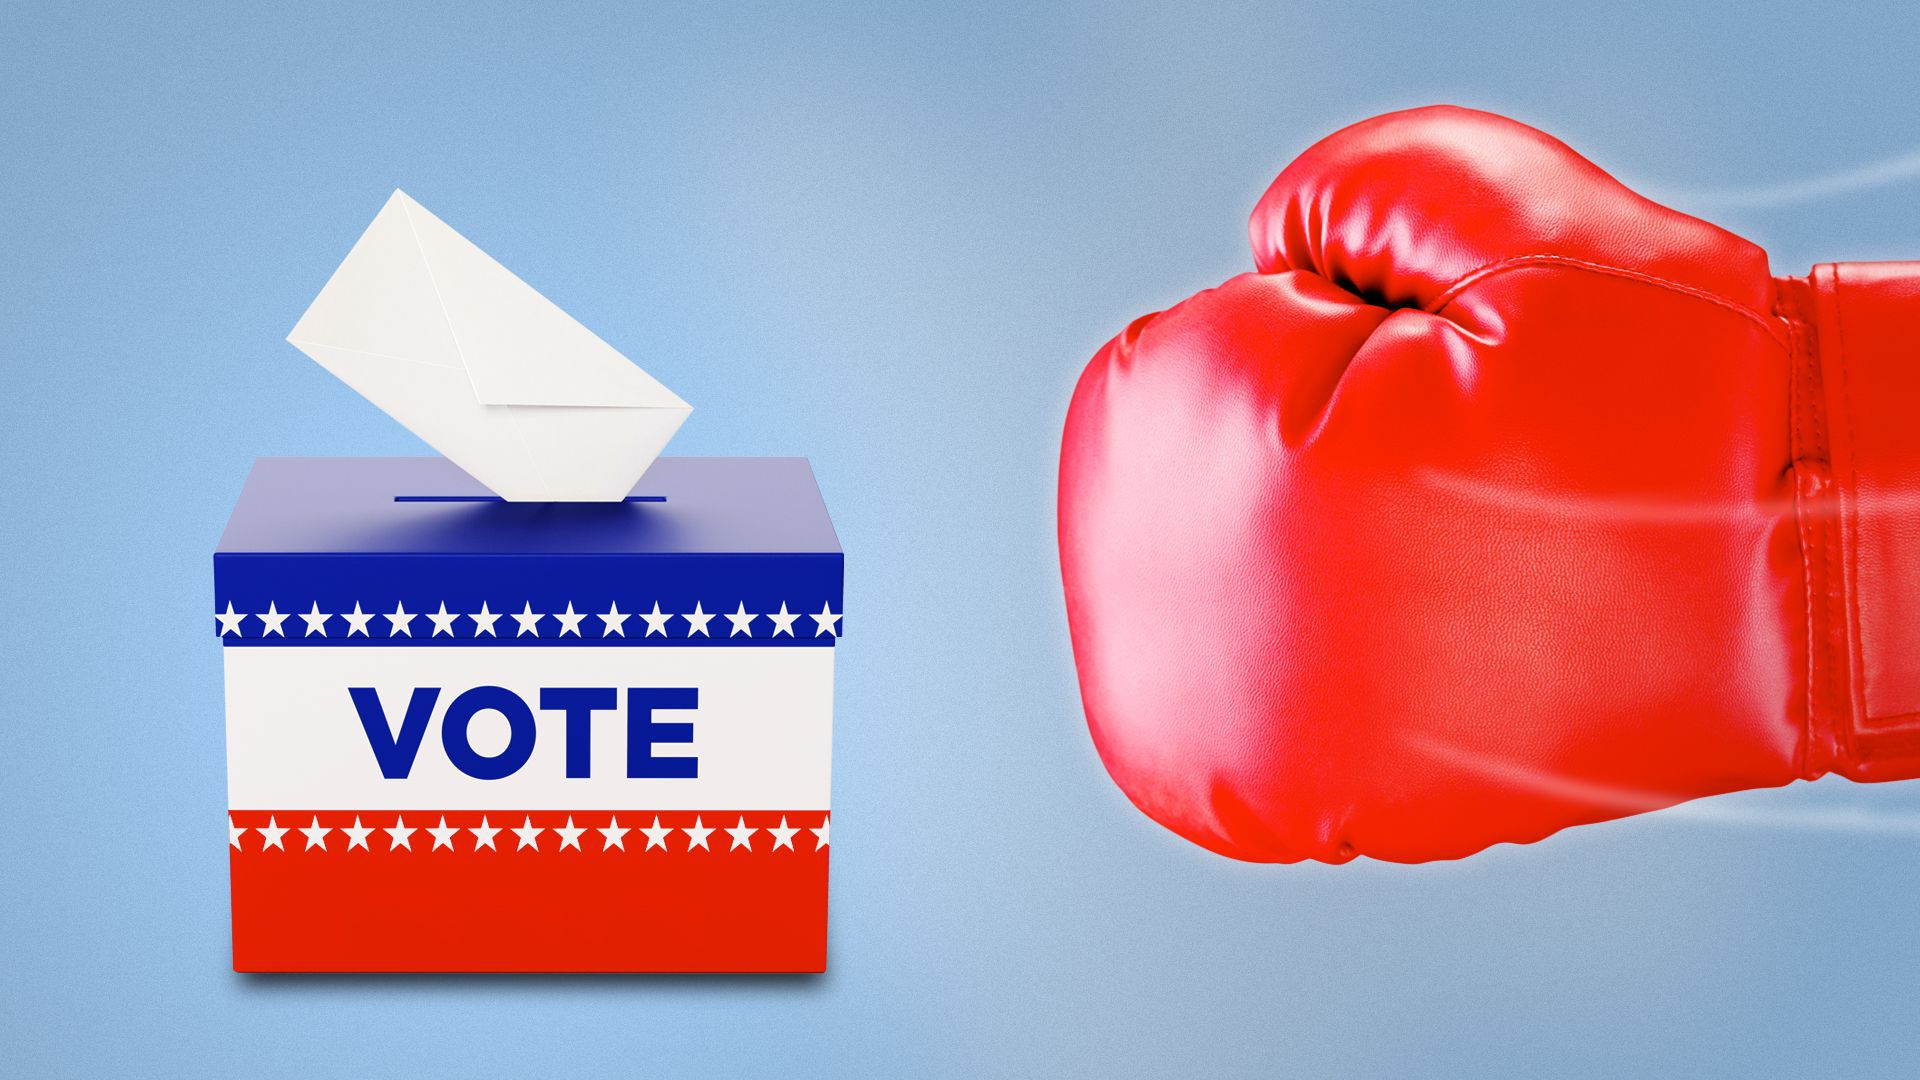 Boxing glove about to punch a ballot box.